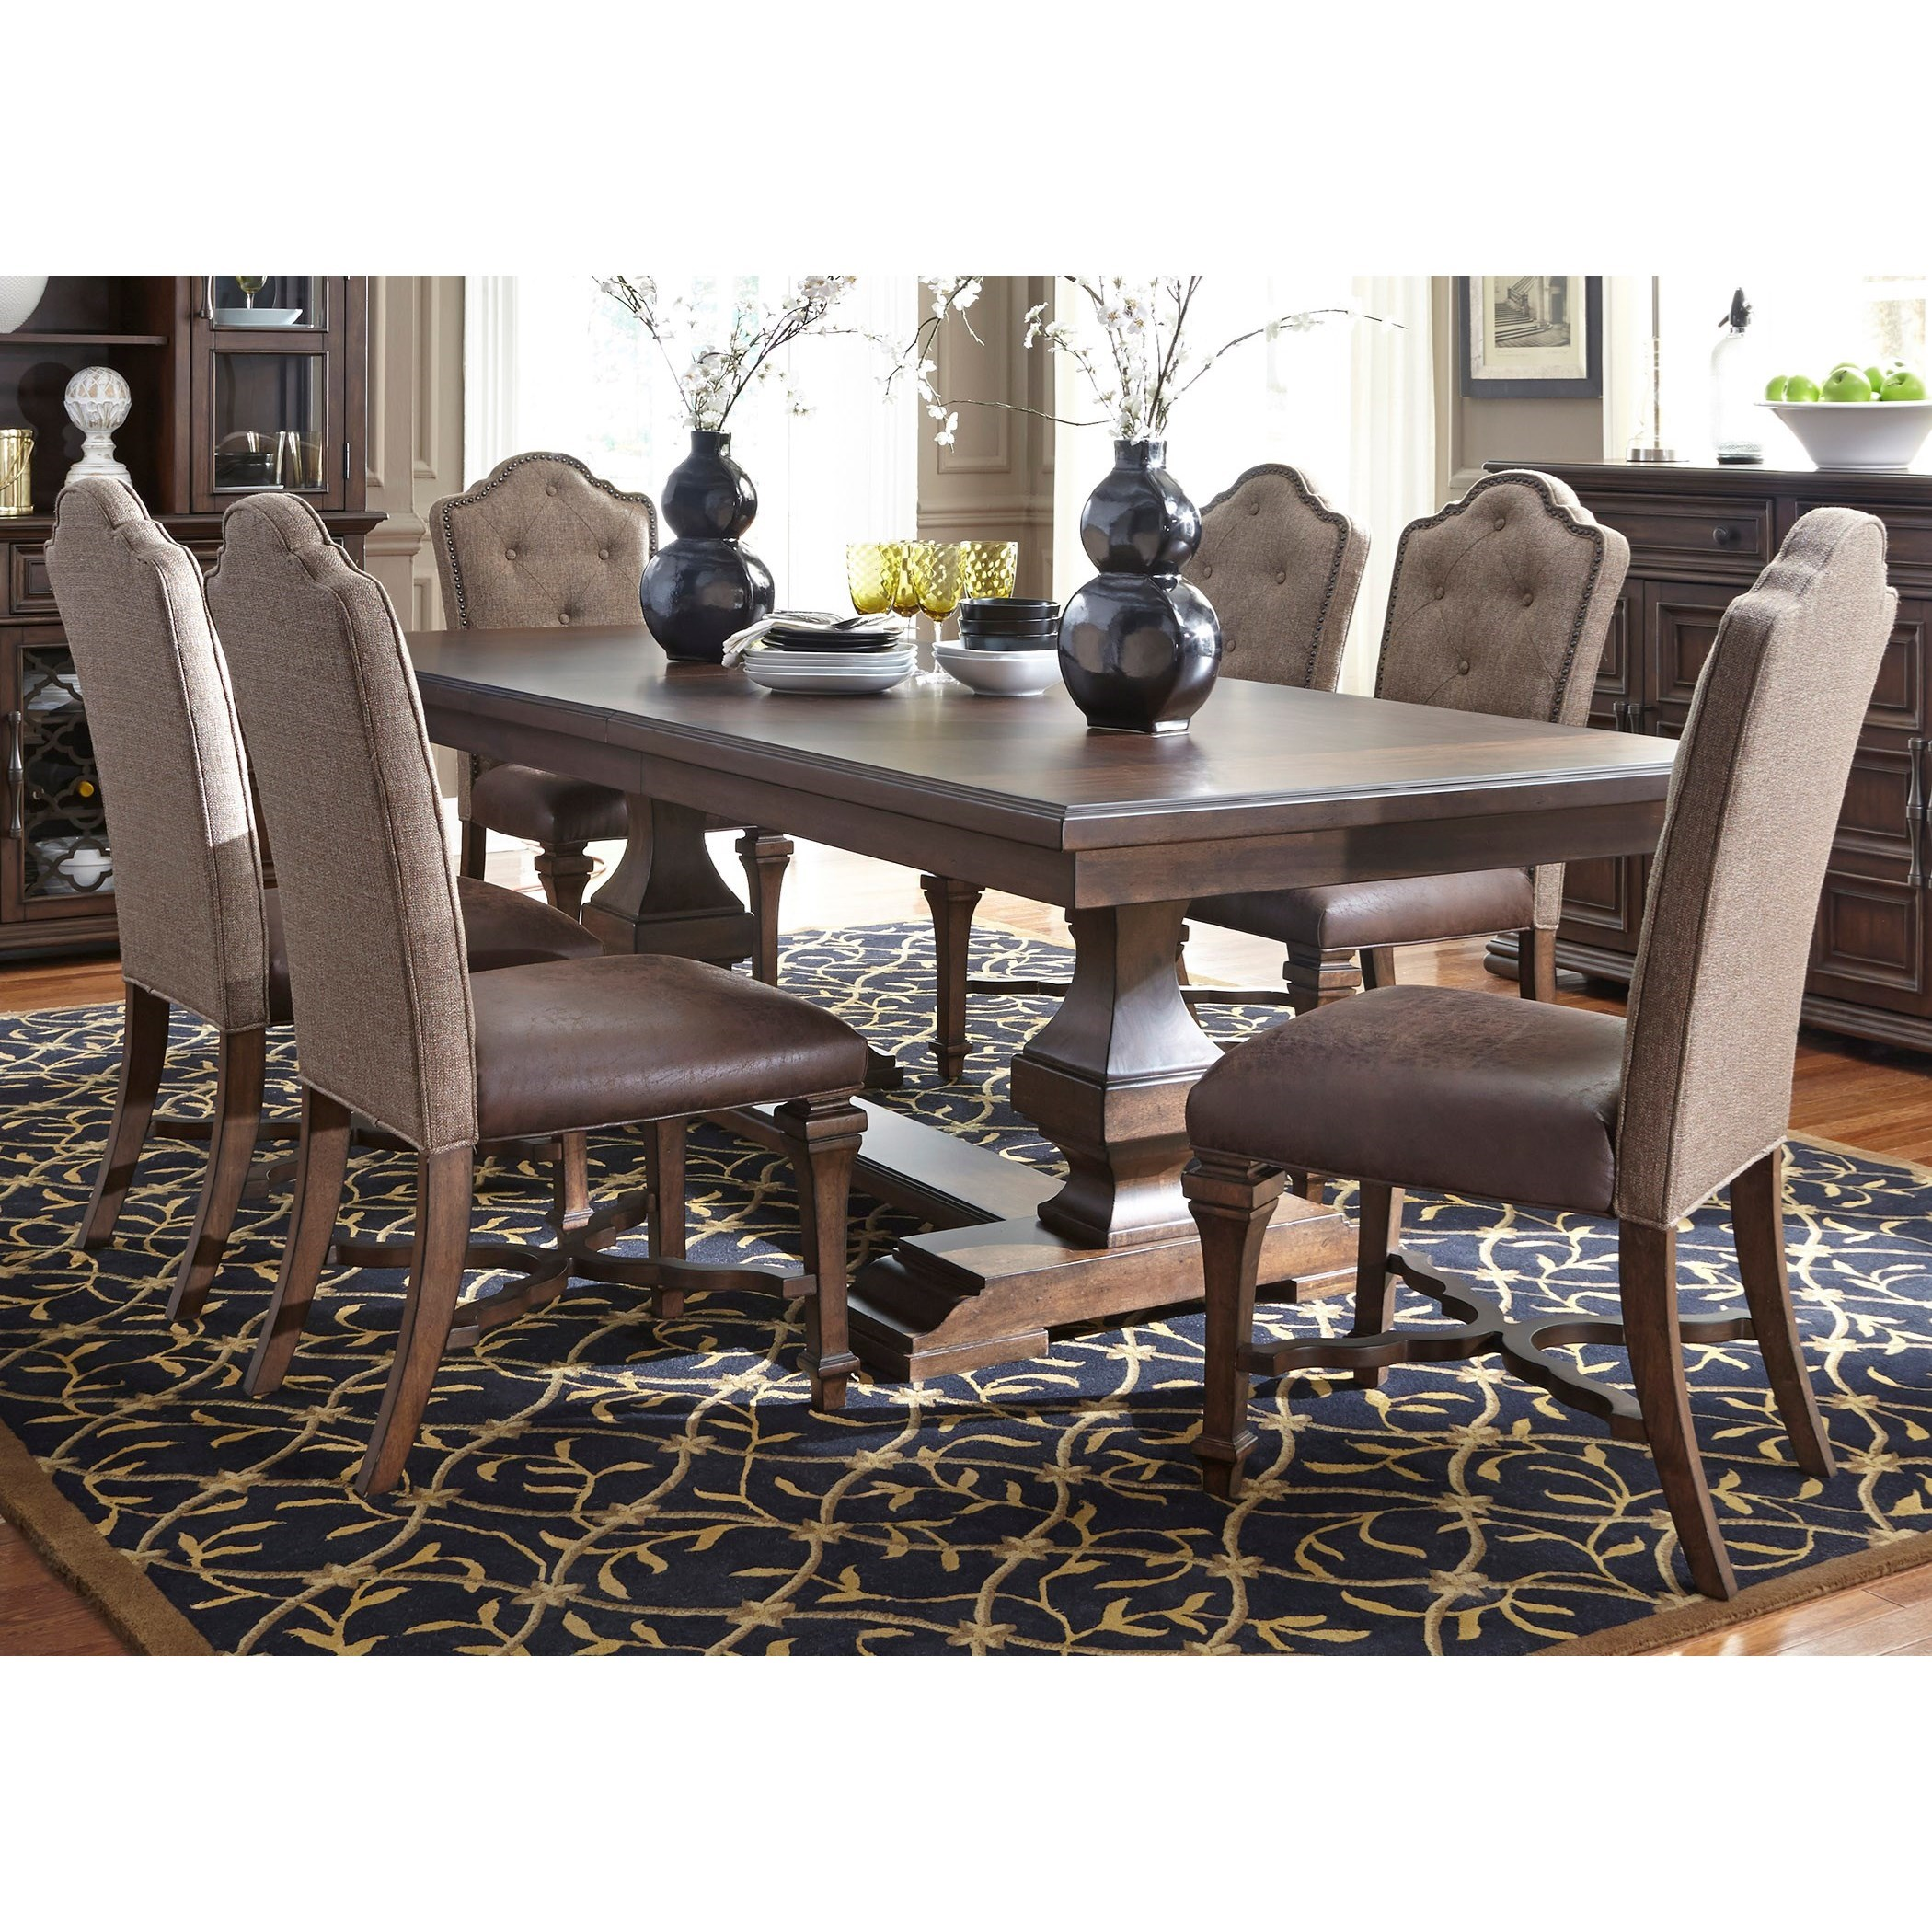 Lucca 7 Piece Dining Table and Chair Set by Libby at Walker's Furniture